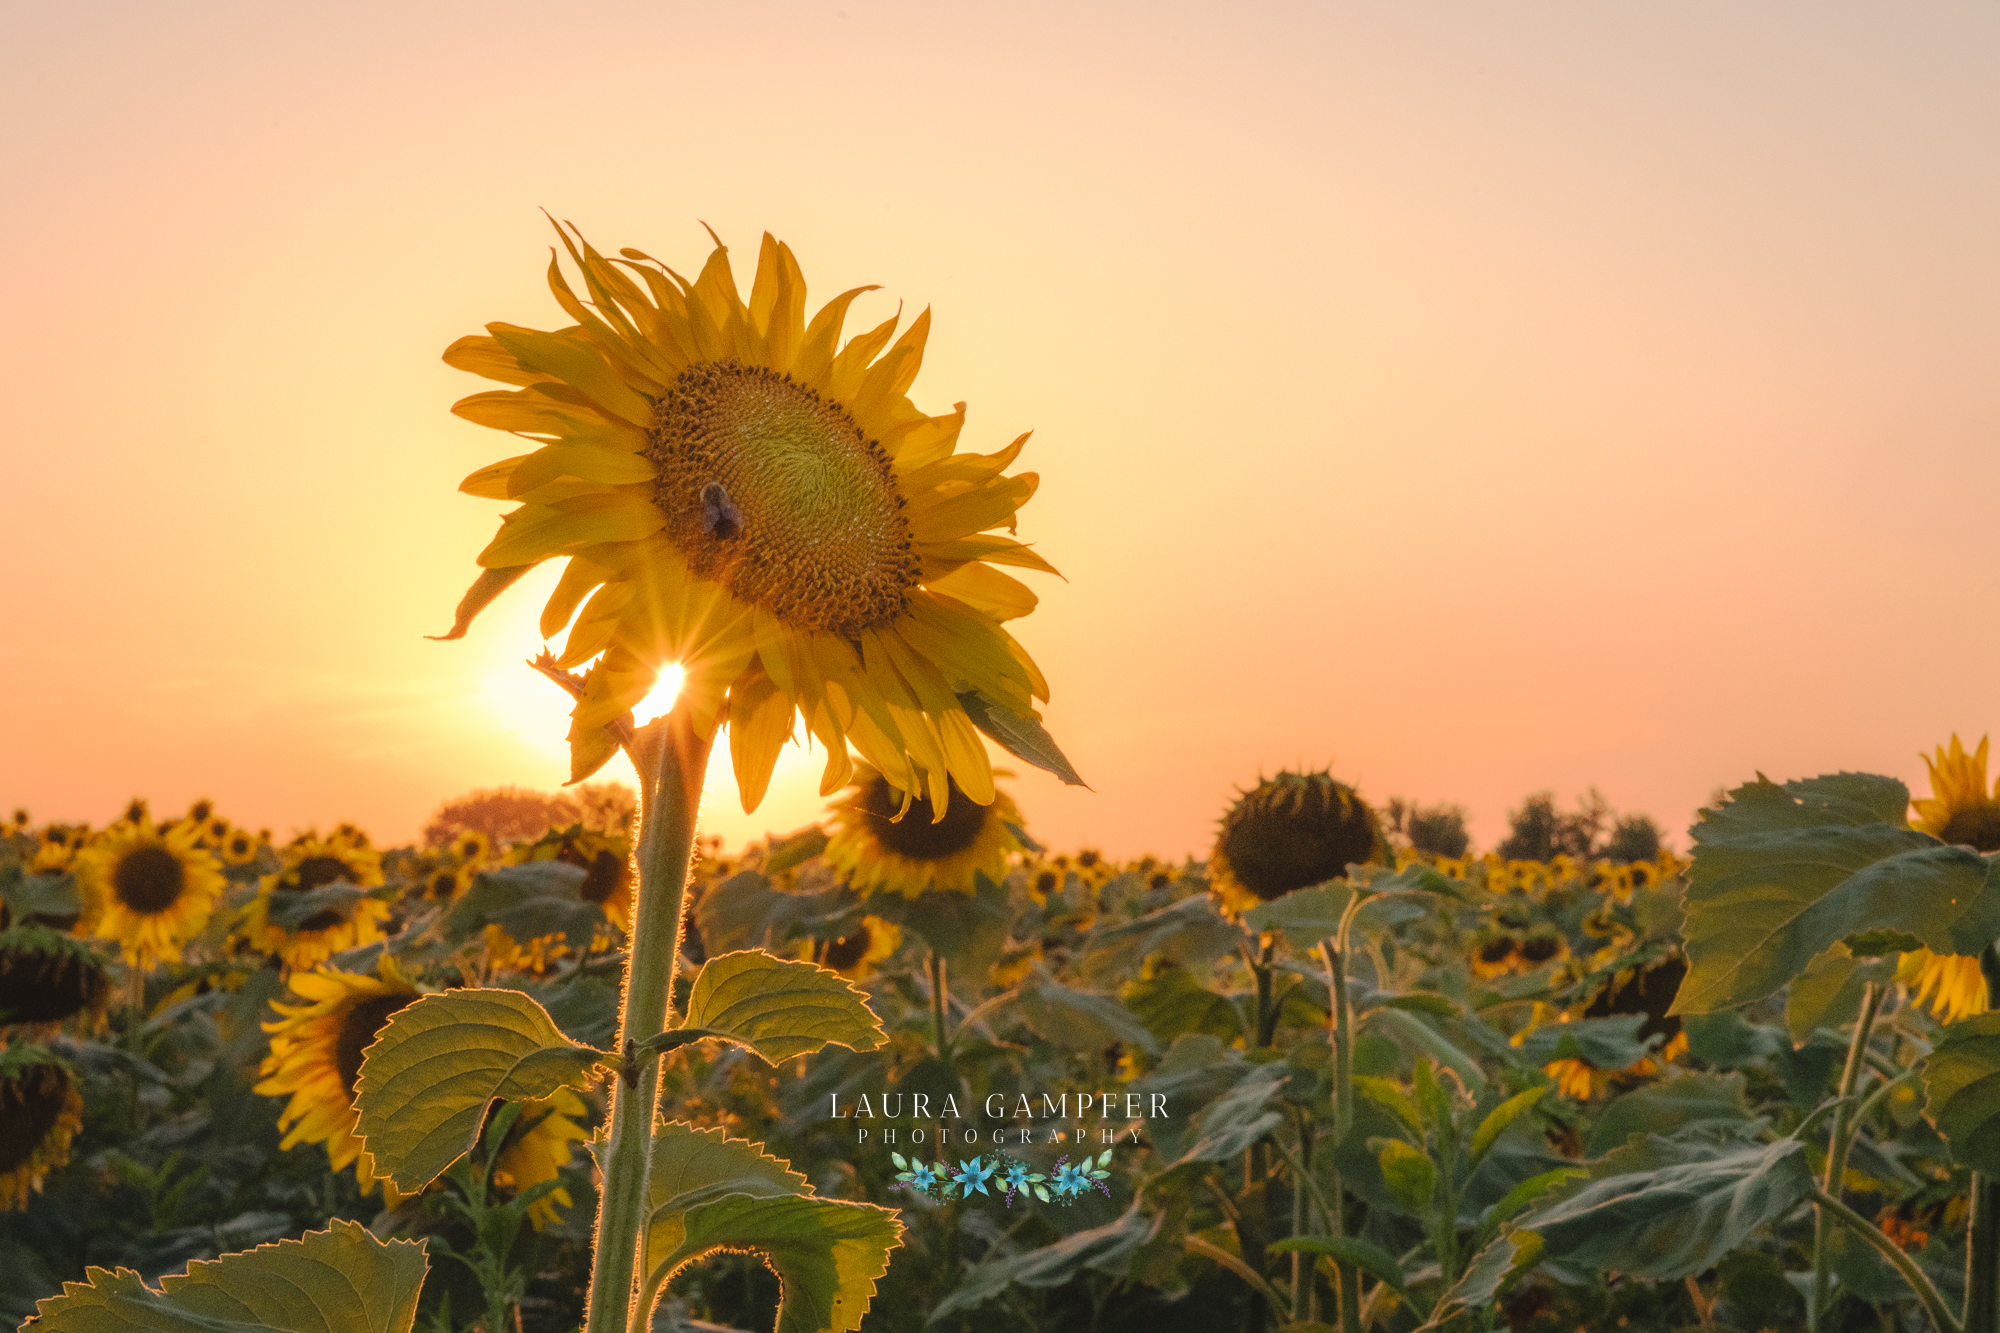 sunflower-field-illinois-laura-gampfer-photography